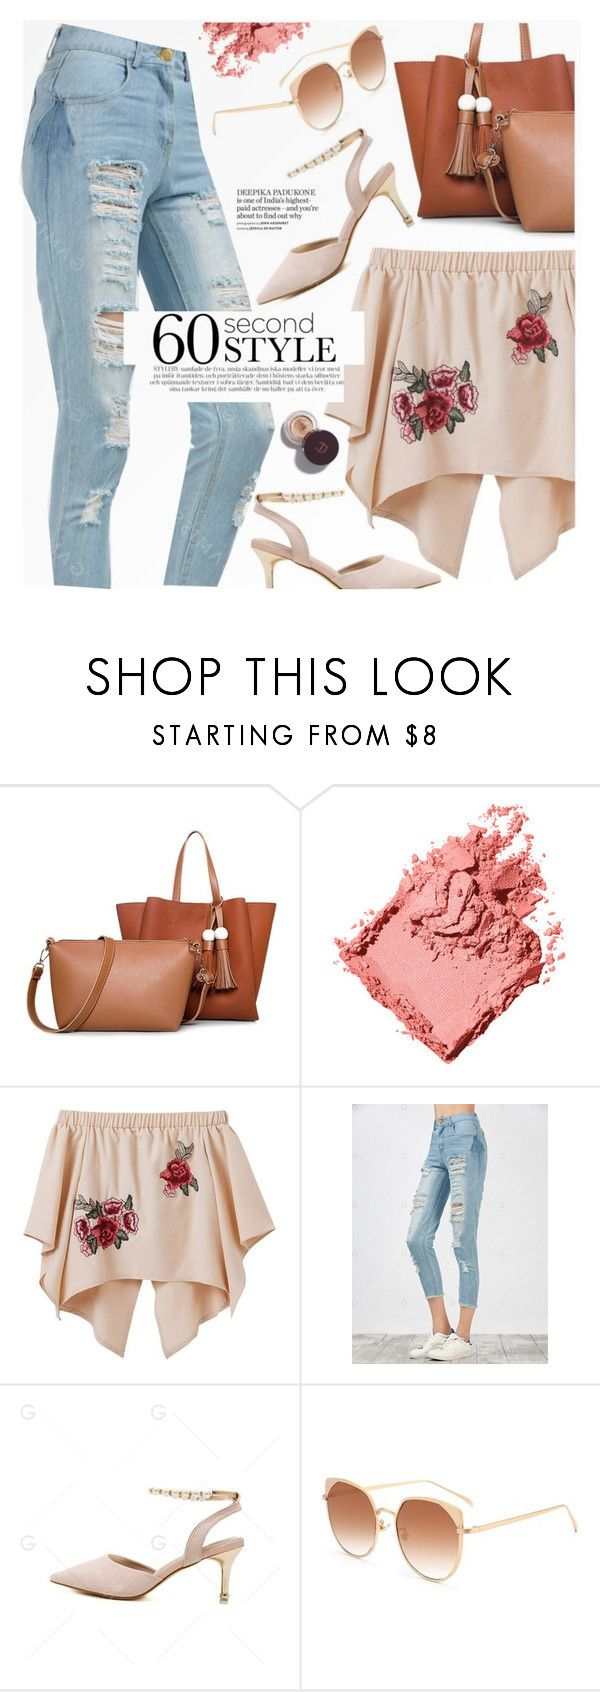 """60 seconds style"" by yexyka ❤ liked on Polyvore featuring Bobbi Brown Cosmetics"